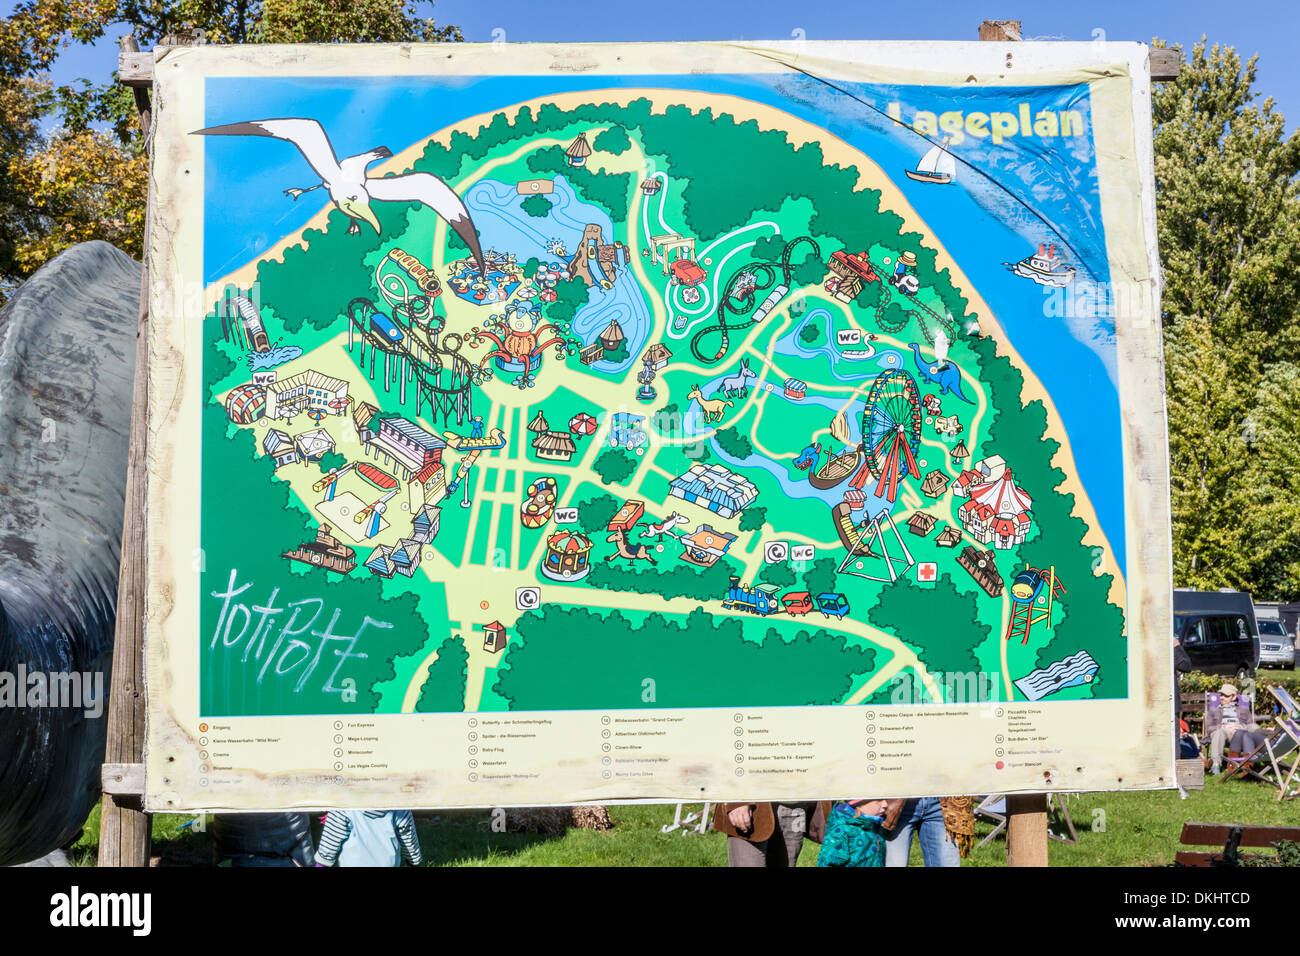 treptow park spree park berlin stockfotos treptow park spree park berlin bilder alamy. Black Bedroom Furniture Sets. Home Design Ideas